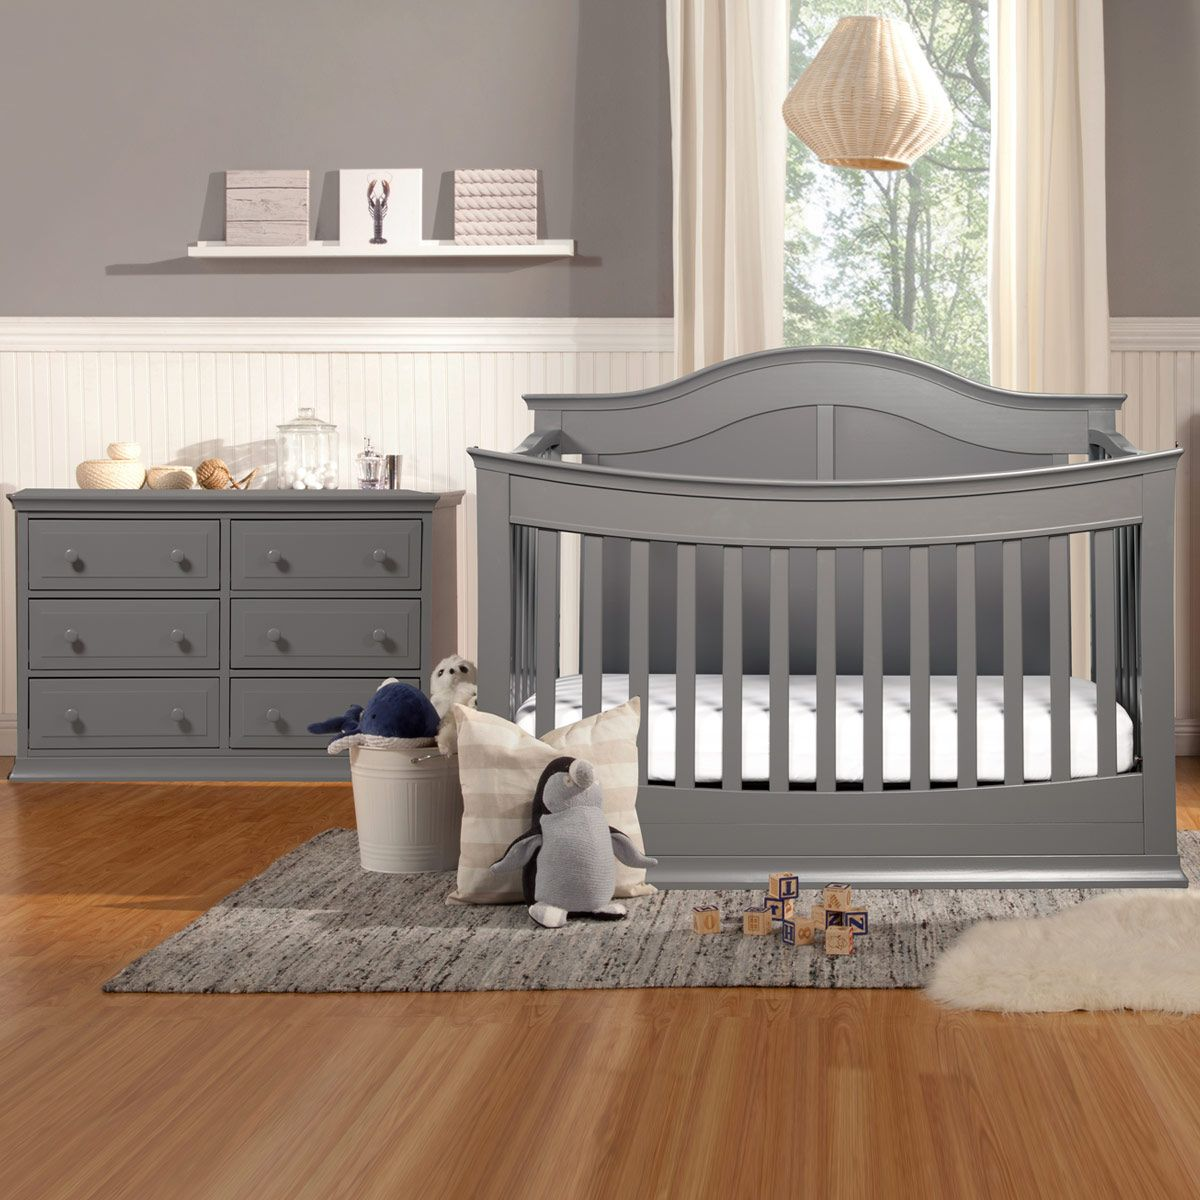 Davinci Meadow 2 Piece Nursery Set 4 In 1 Convertible Crib And Signature 6 Drawer Double Dresser In Slate Grey Crib Nursery Nursery Furniture Sets Grey Crib [ 1200 x 1200 Pixel ]